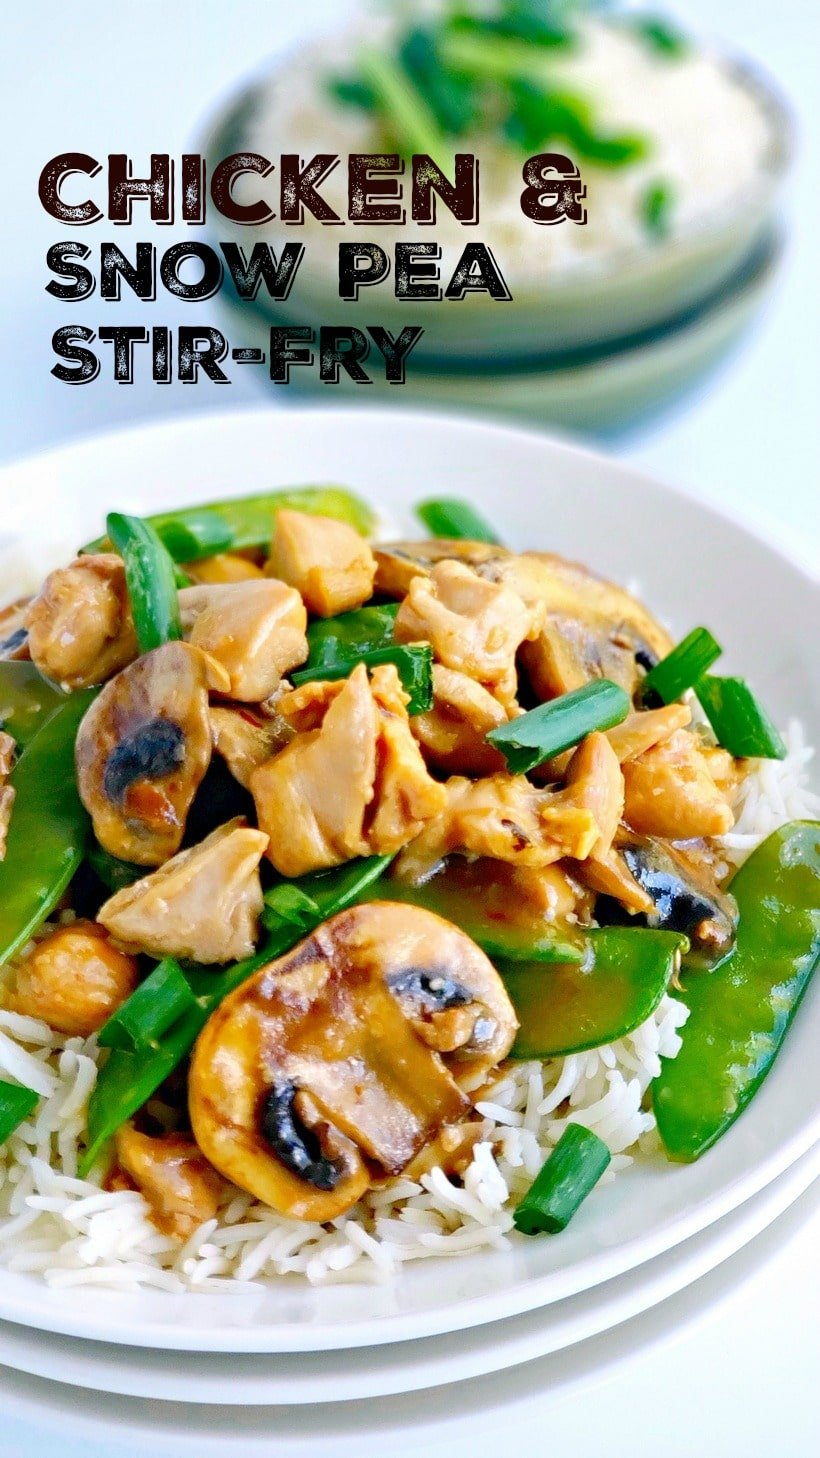 Chicken and snow pea stir fry on a white plate with a text overlay that reads chicken and snow pea stir-fry.